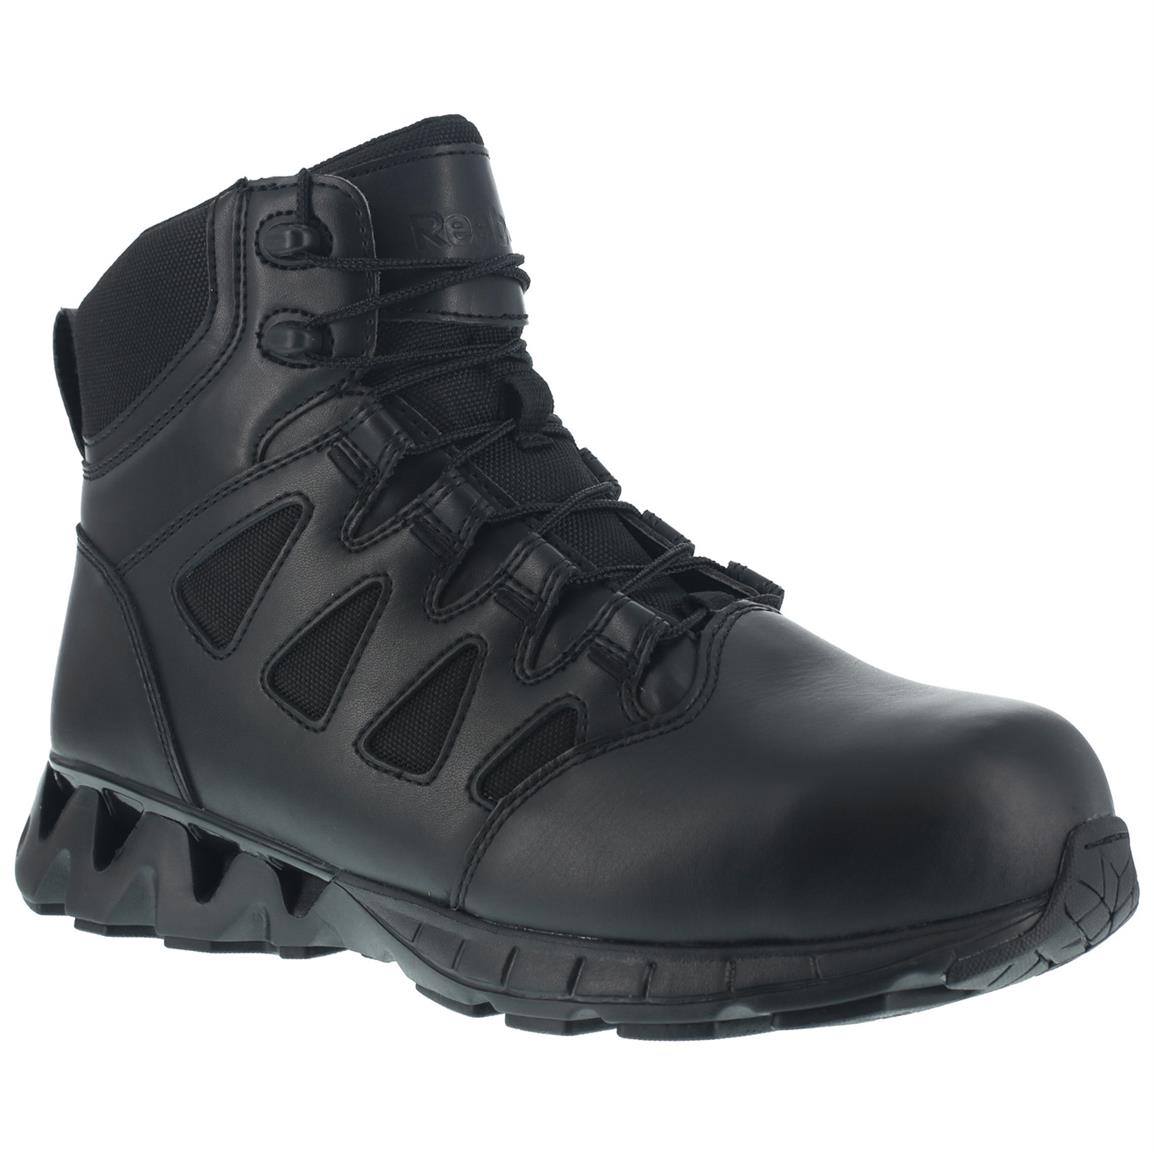 "Reebok Duty 6"" ZigKick SZ Women's Composite Toe Tactical Boots, Side Zip, Black"